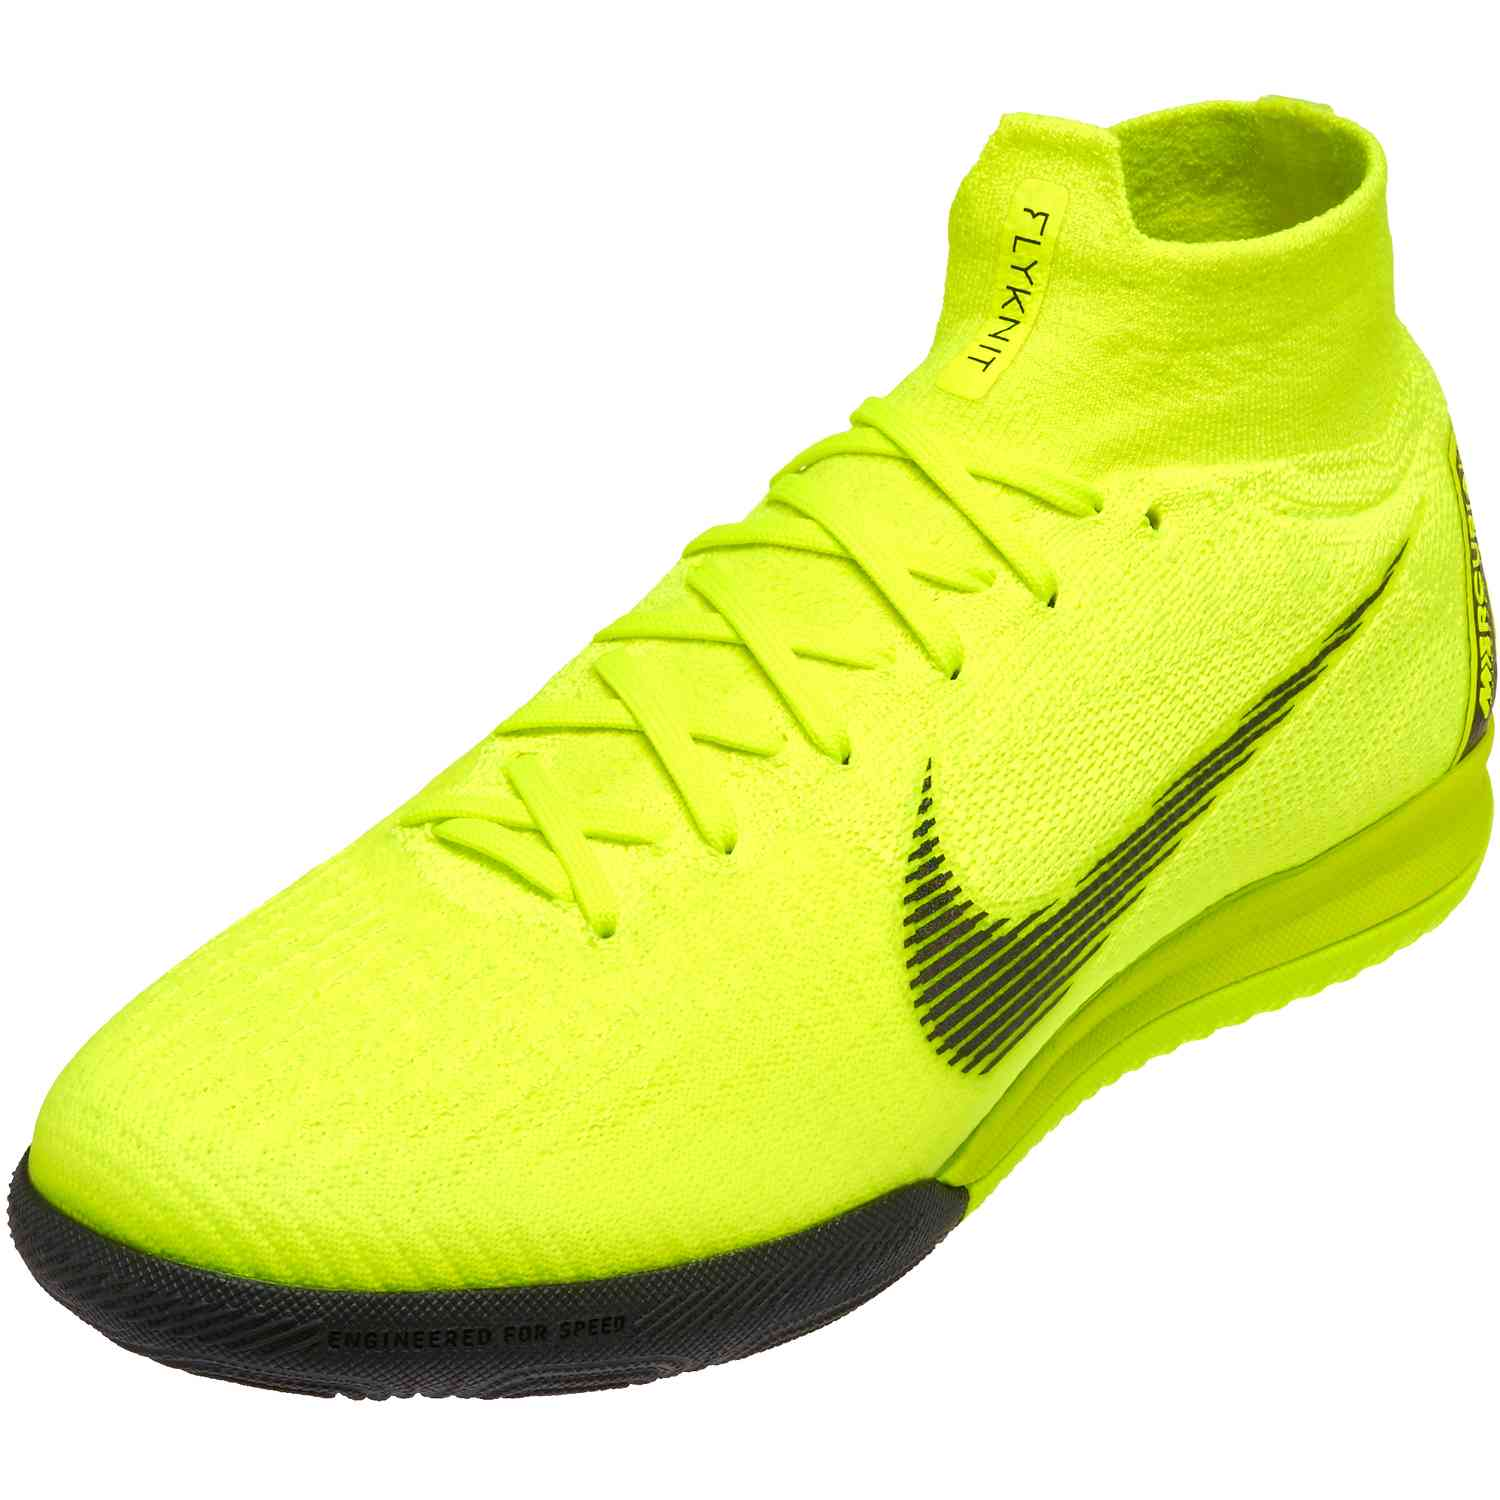 21de869608b Nike Mercurial SuperflyX 6 Elite IC - Volt Black - SoccerPro